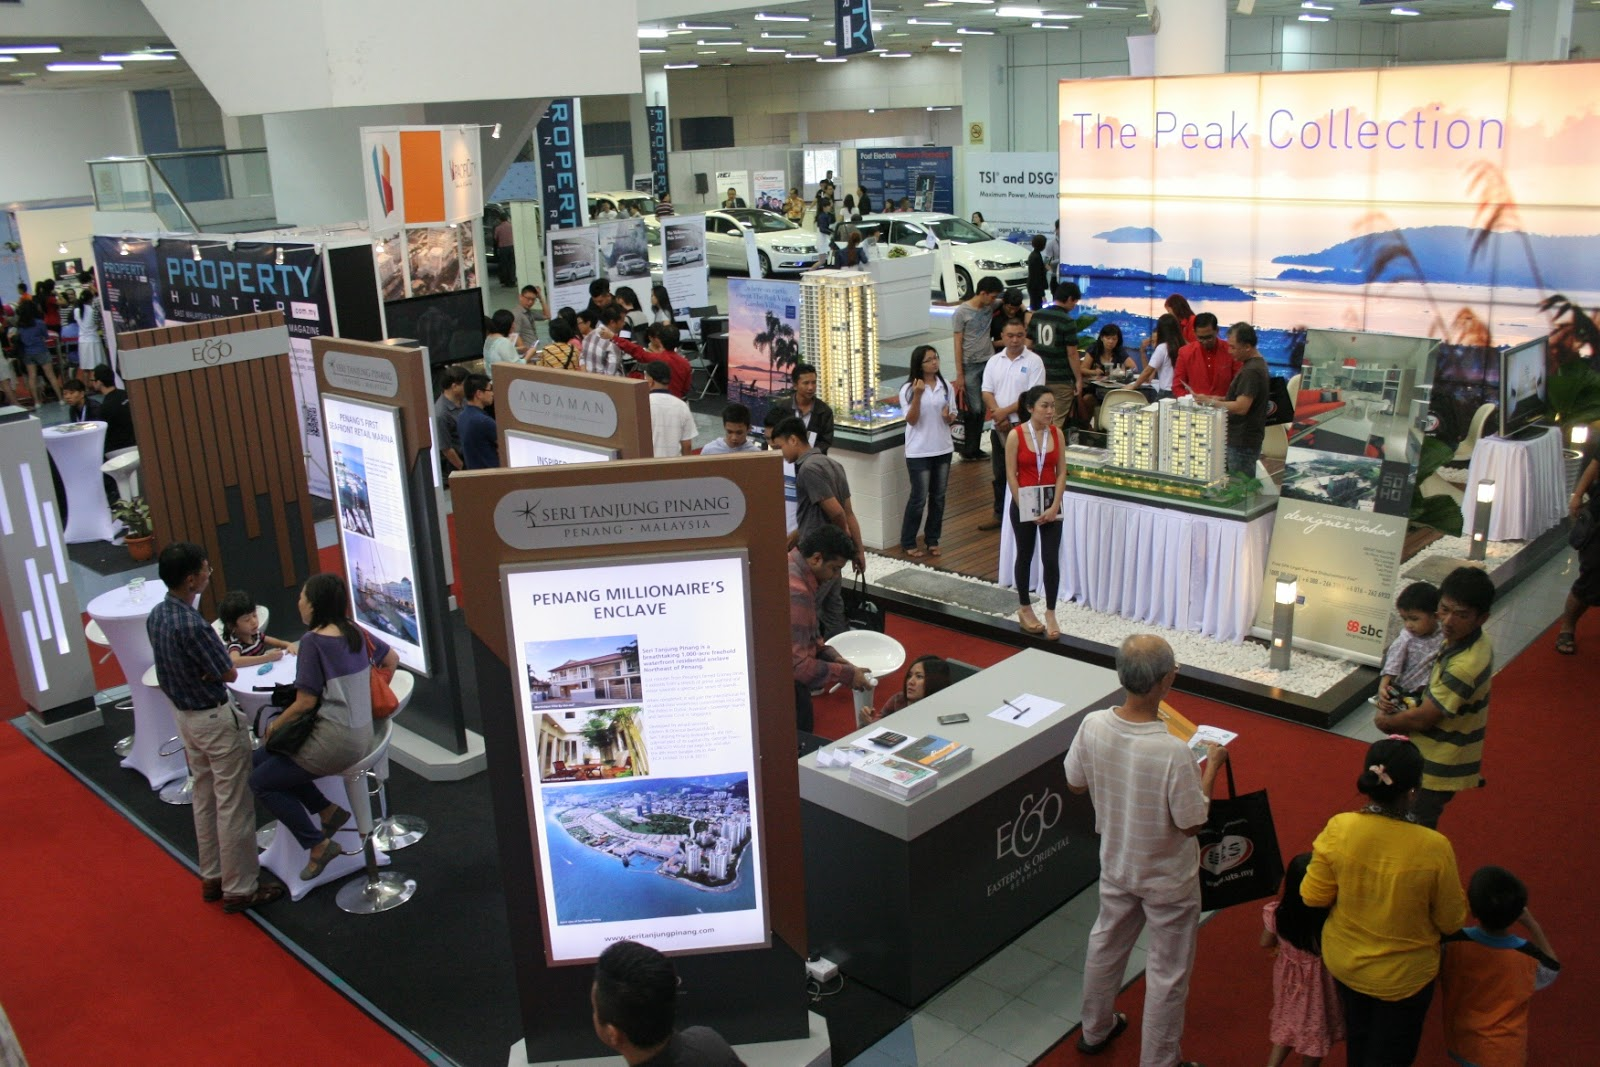 Property Exhibition Booth : Everyday food i love rm million worth of property sold at the